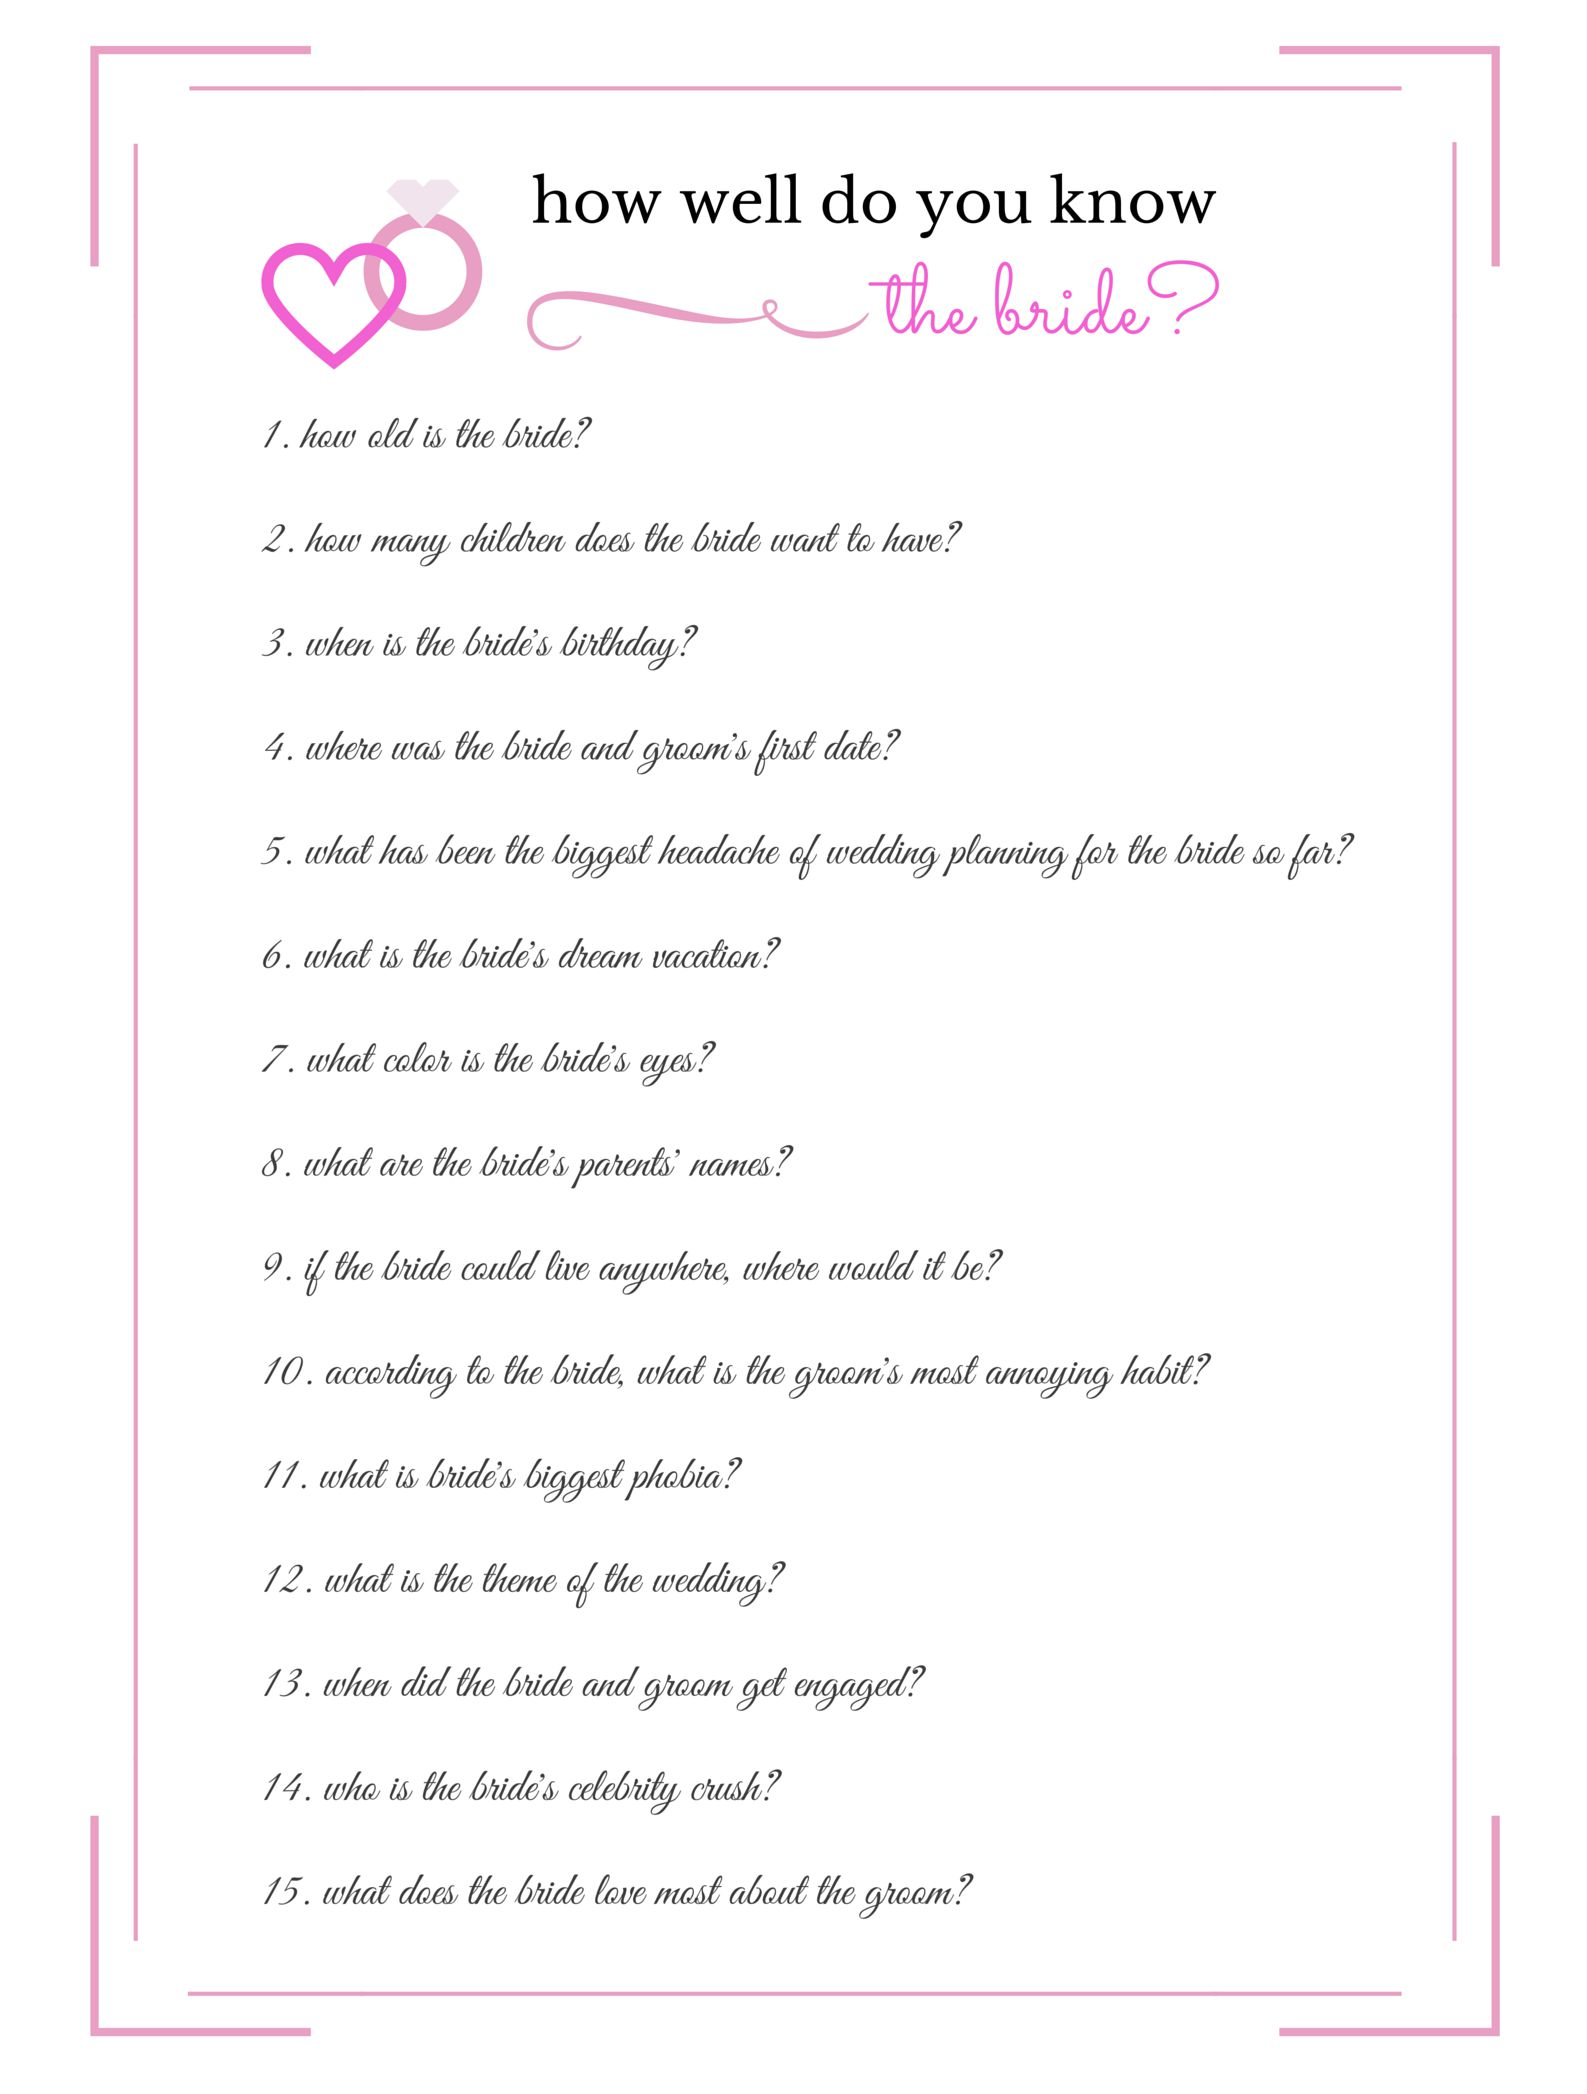 From Wild to Sober... 10 Bachelorette Party Games to Have